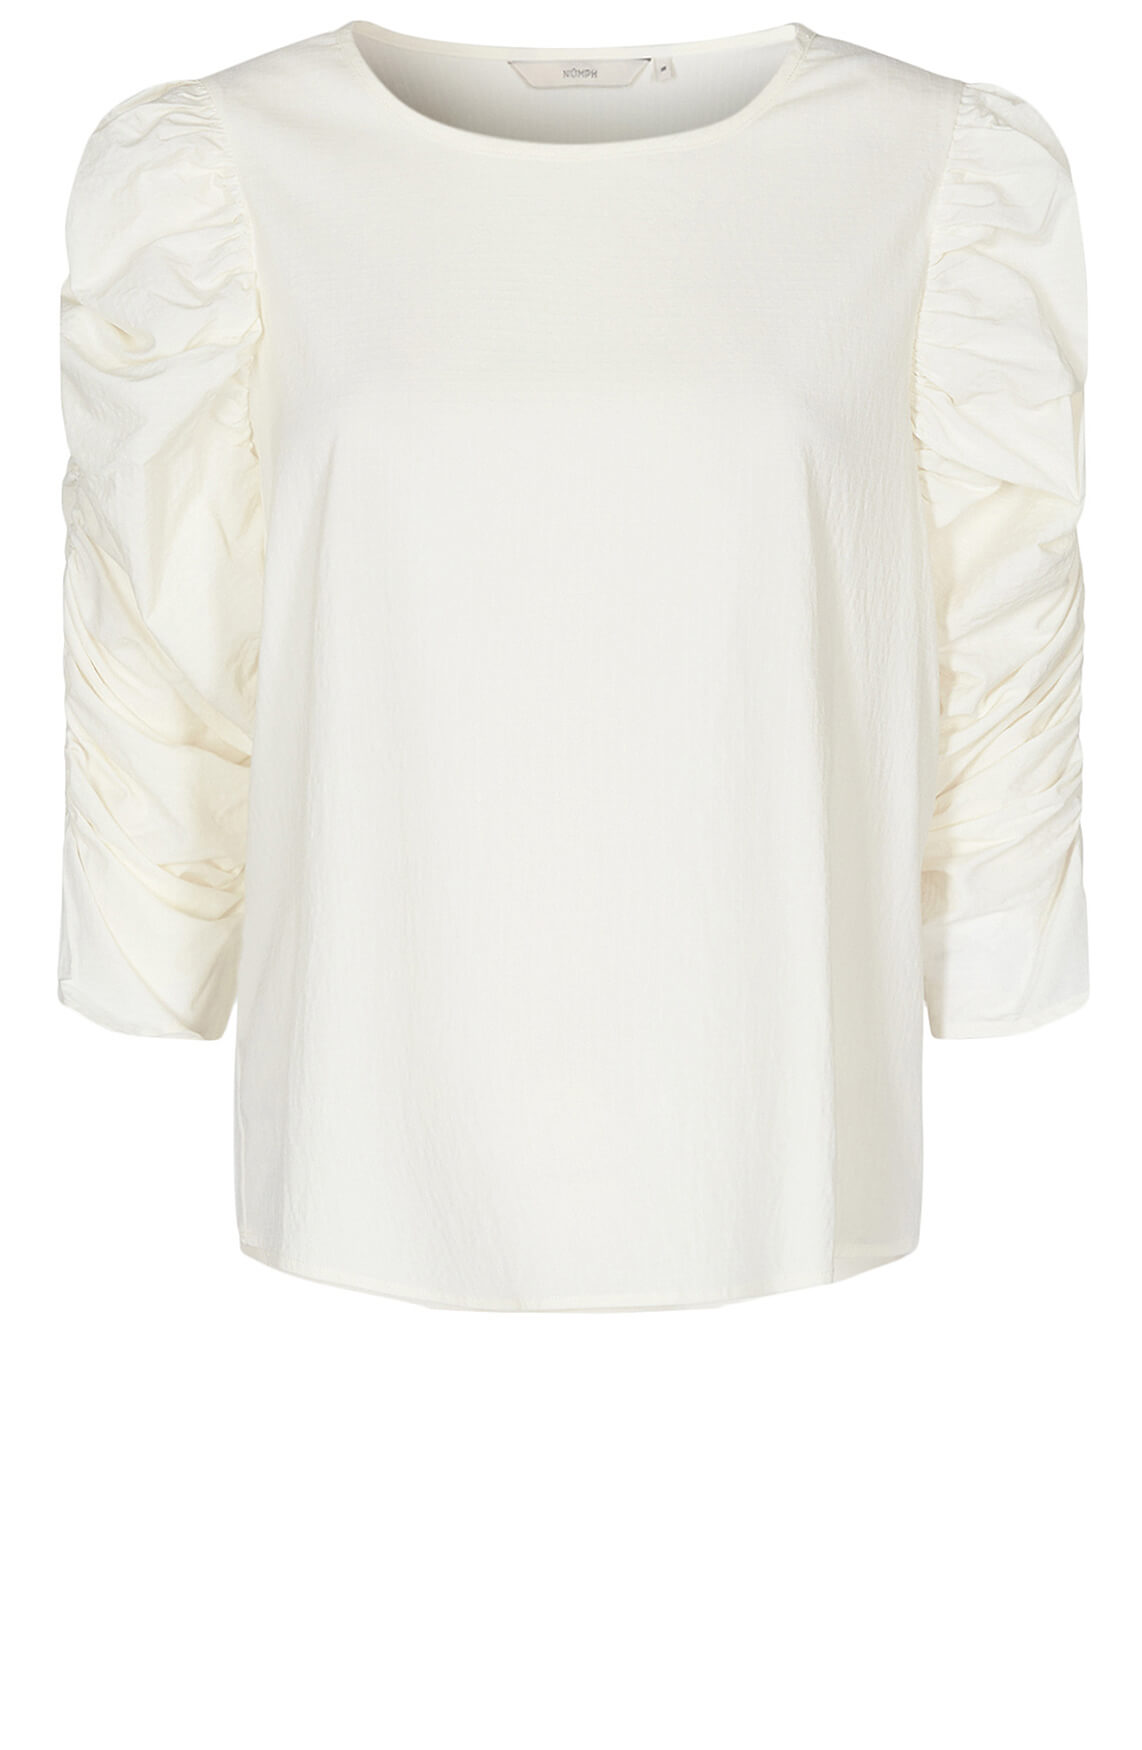 Numph Dames Fiona blouse wit